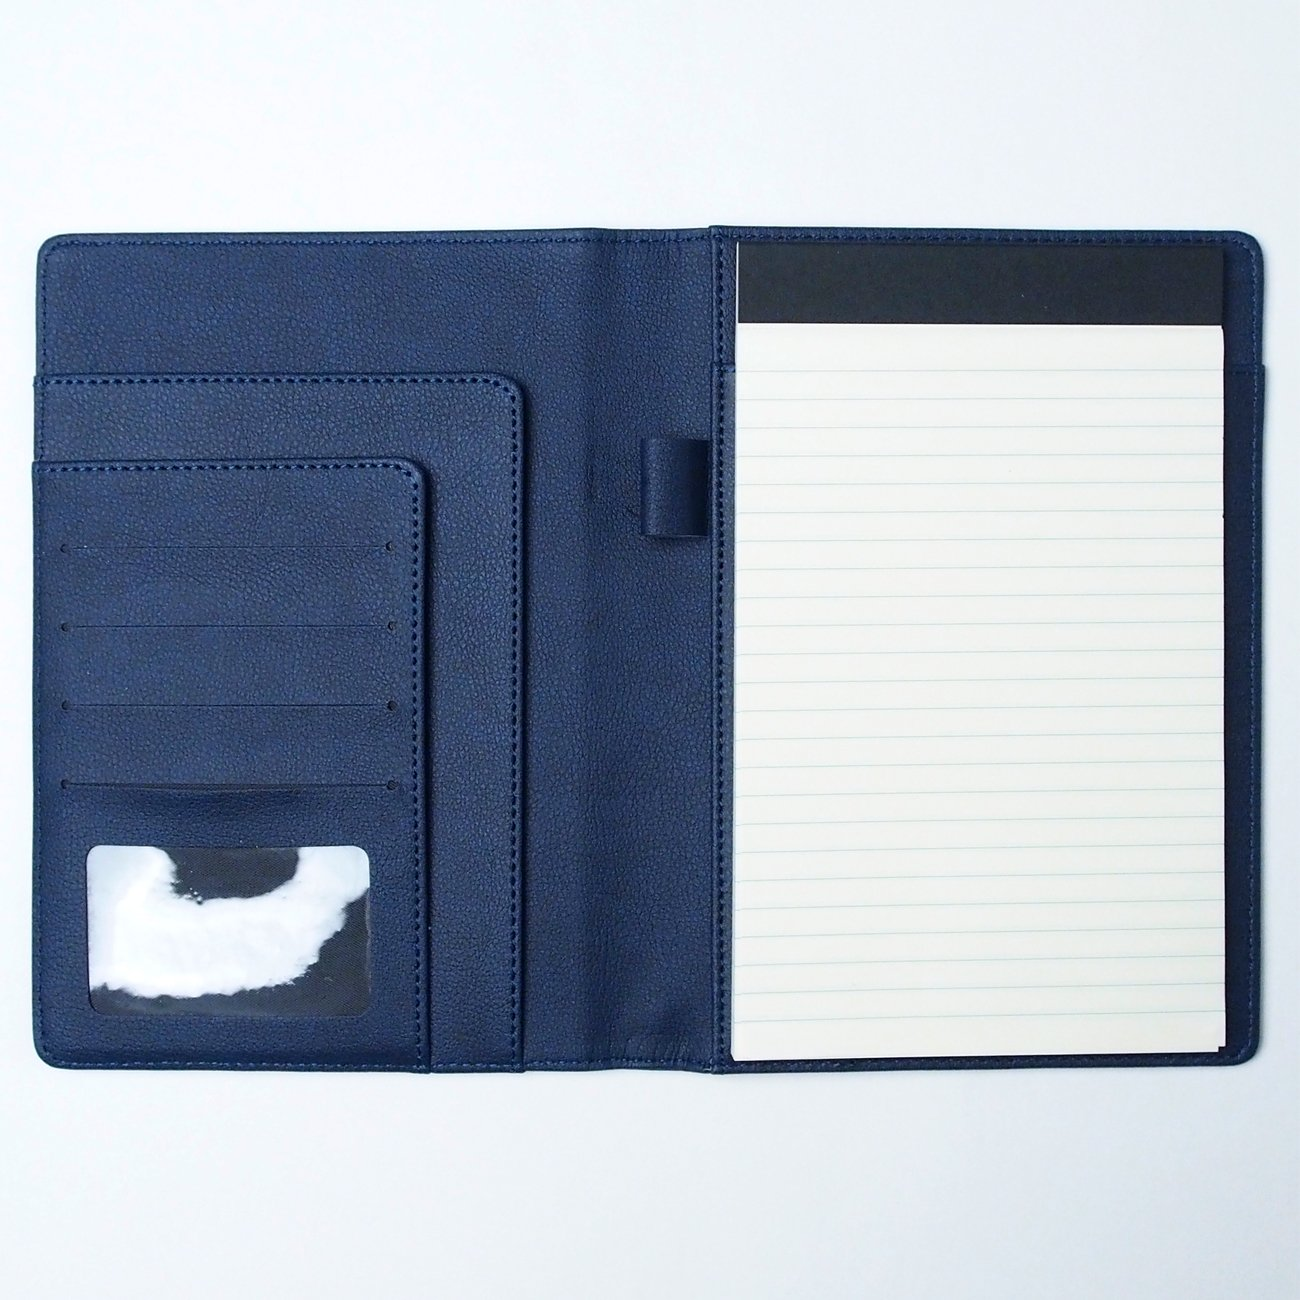 AHZOA 6 Pockets A5 Memo Padfolio S1, Including 5 X 8 inch Legal Writing Pad, Synthetic Leather Handmade About 6.3 X 8.7 inch Folder Clipboard (Navy)